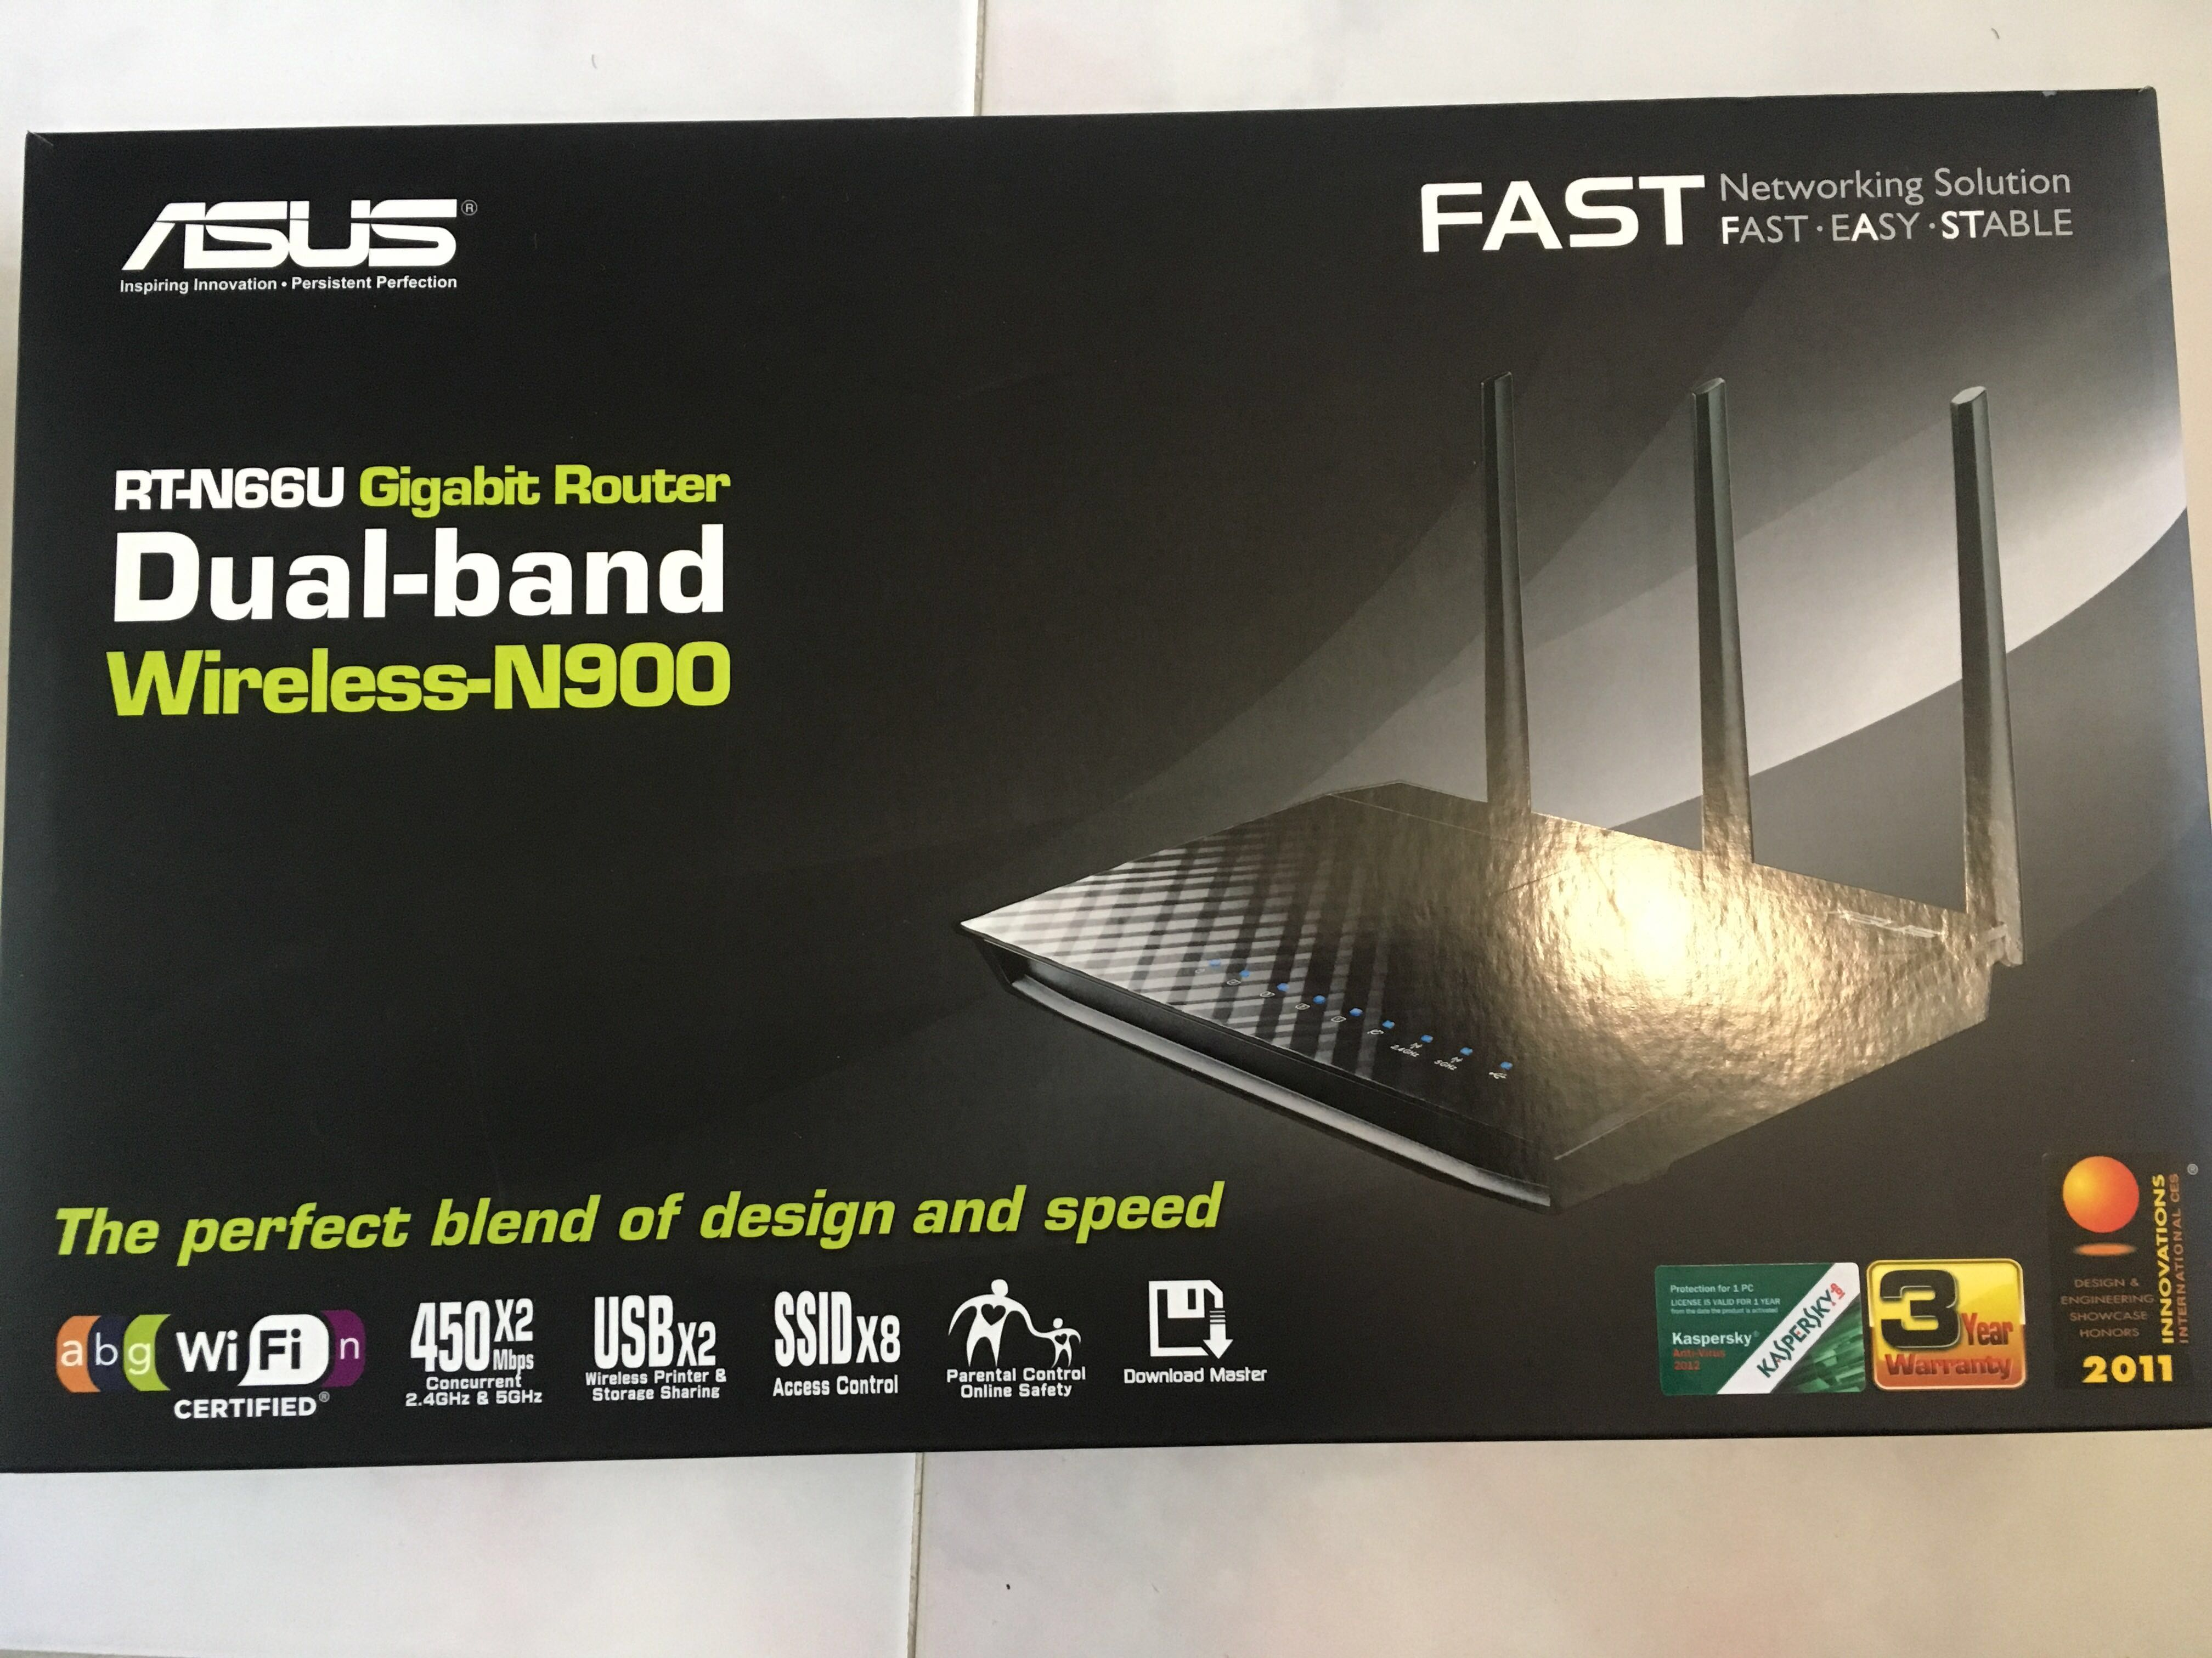 use download master asus router